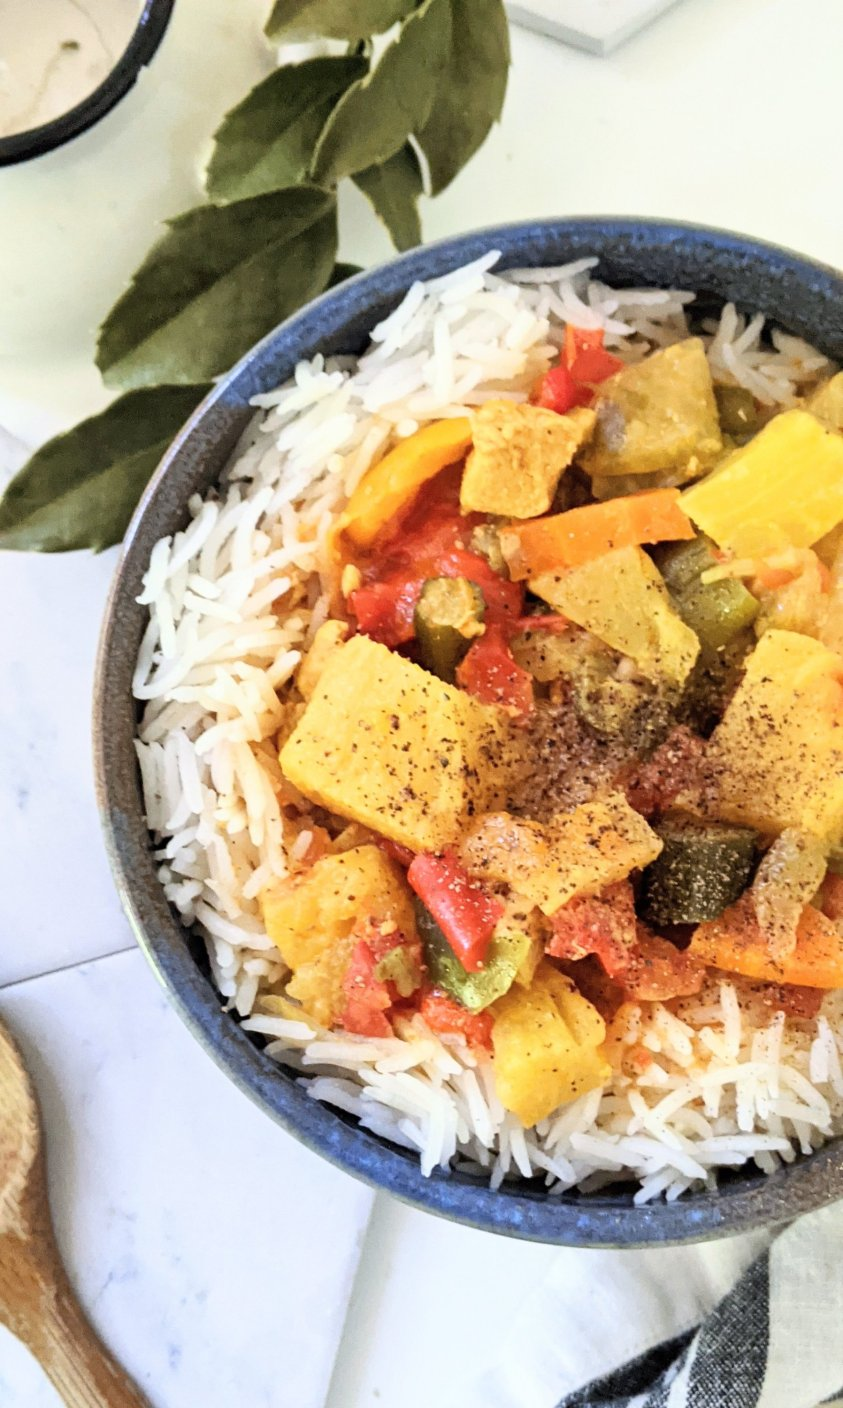 instant pot pineapple chicken curry recipe dairy free coconut chicken curry with pineapple in the pressure cooker without dairy chicken stew non dairy curry recipes with coconut milk and fruit